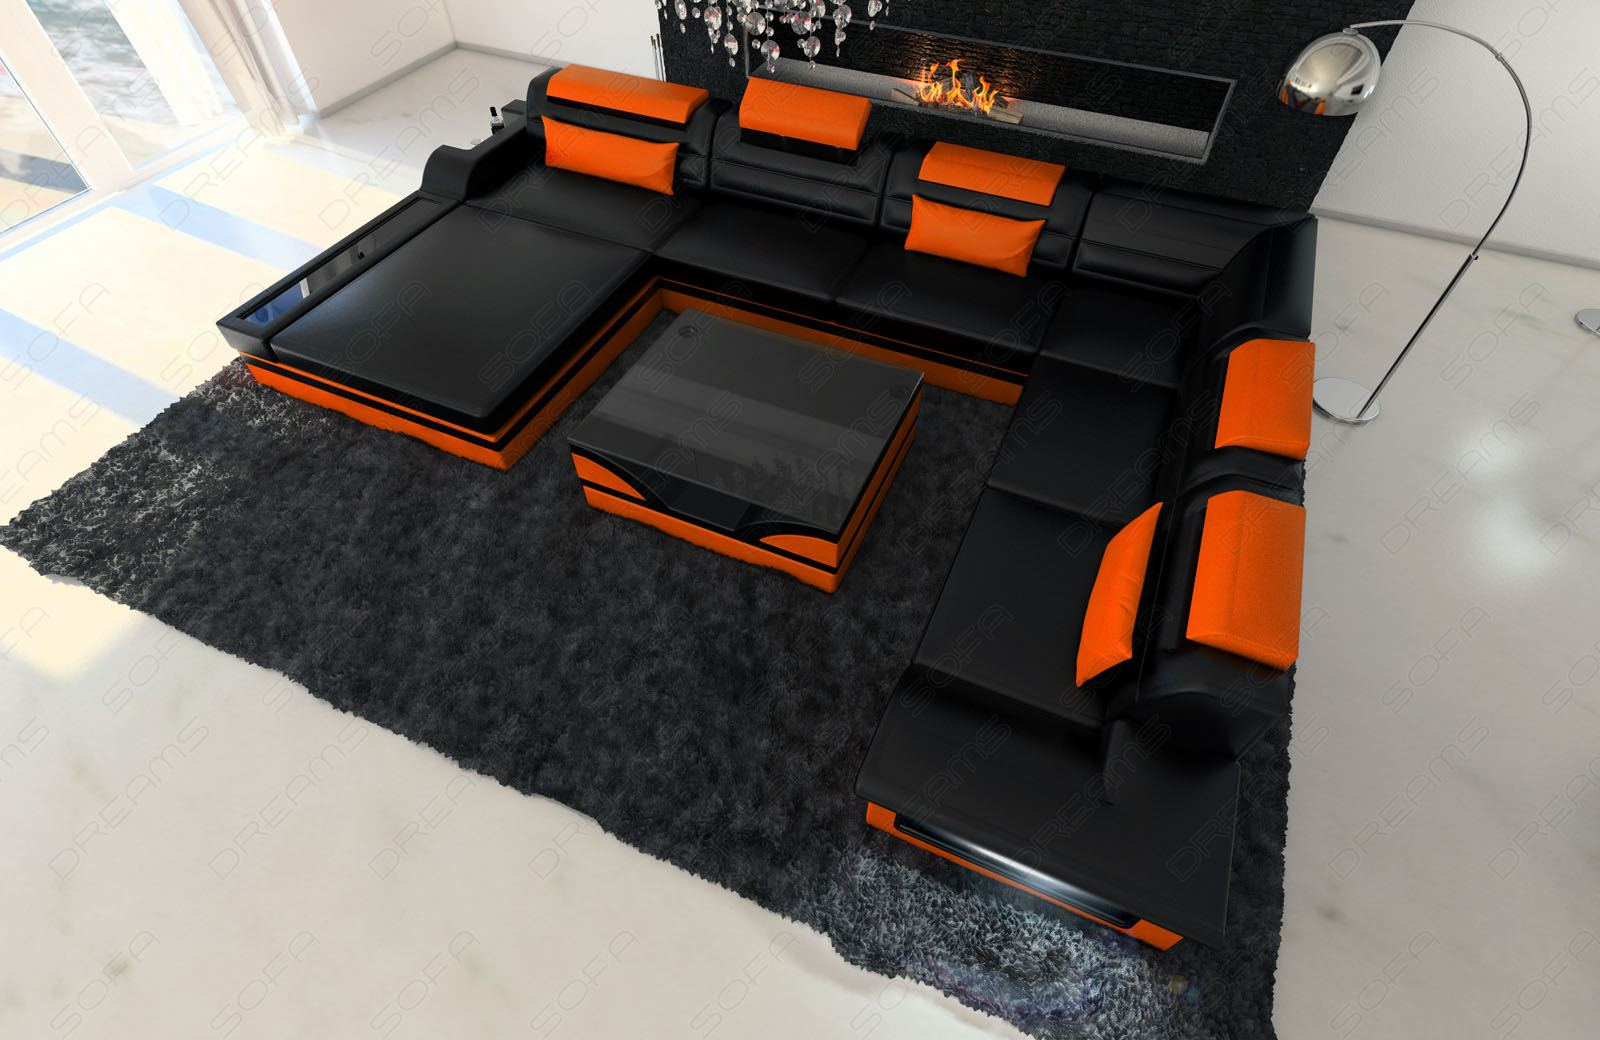 Xxl mezzo home landscape led designer couch set leather sofa ebay for Sofa garnitur